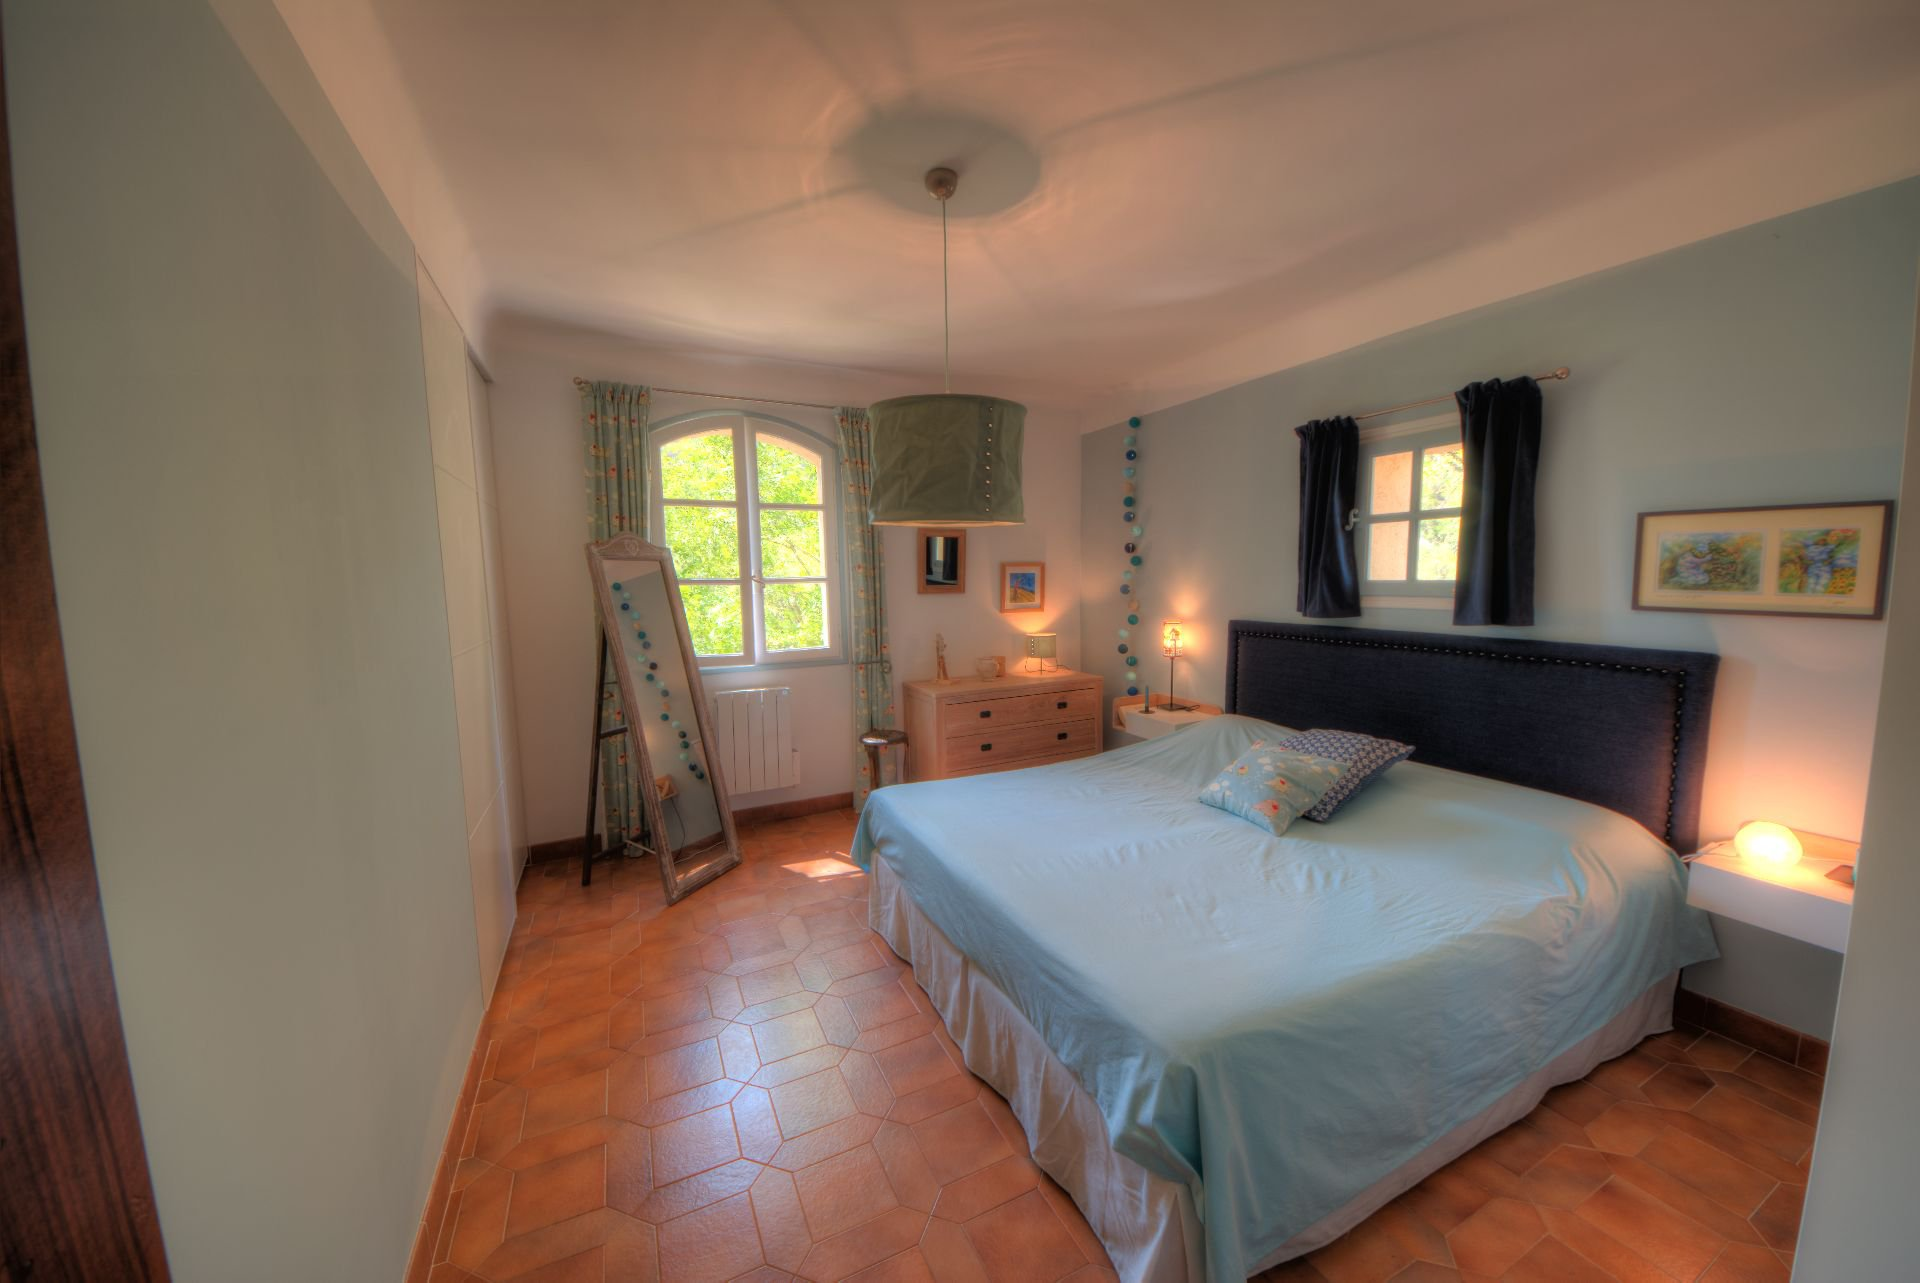 Bedroom 1 of the villa in the heart of the Thoronet